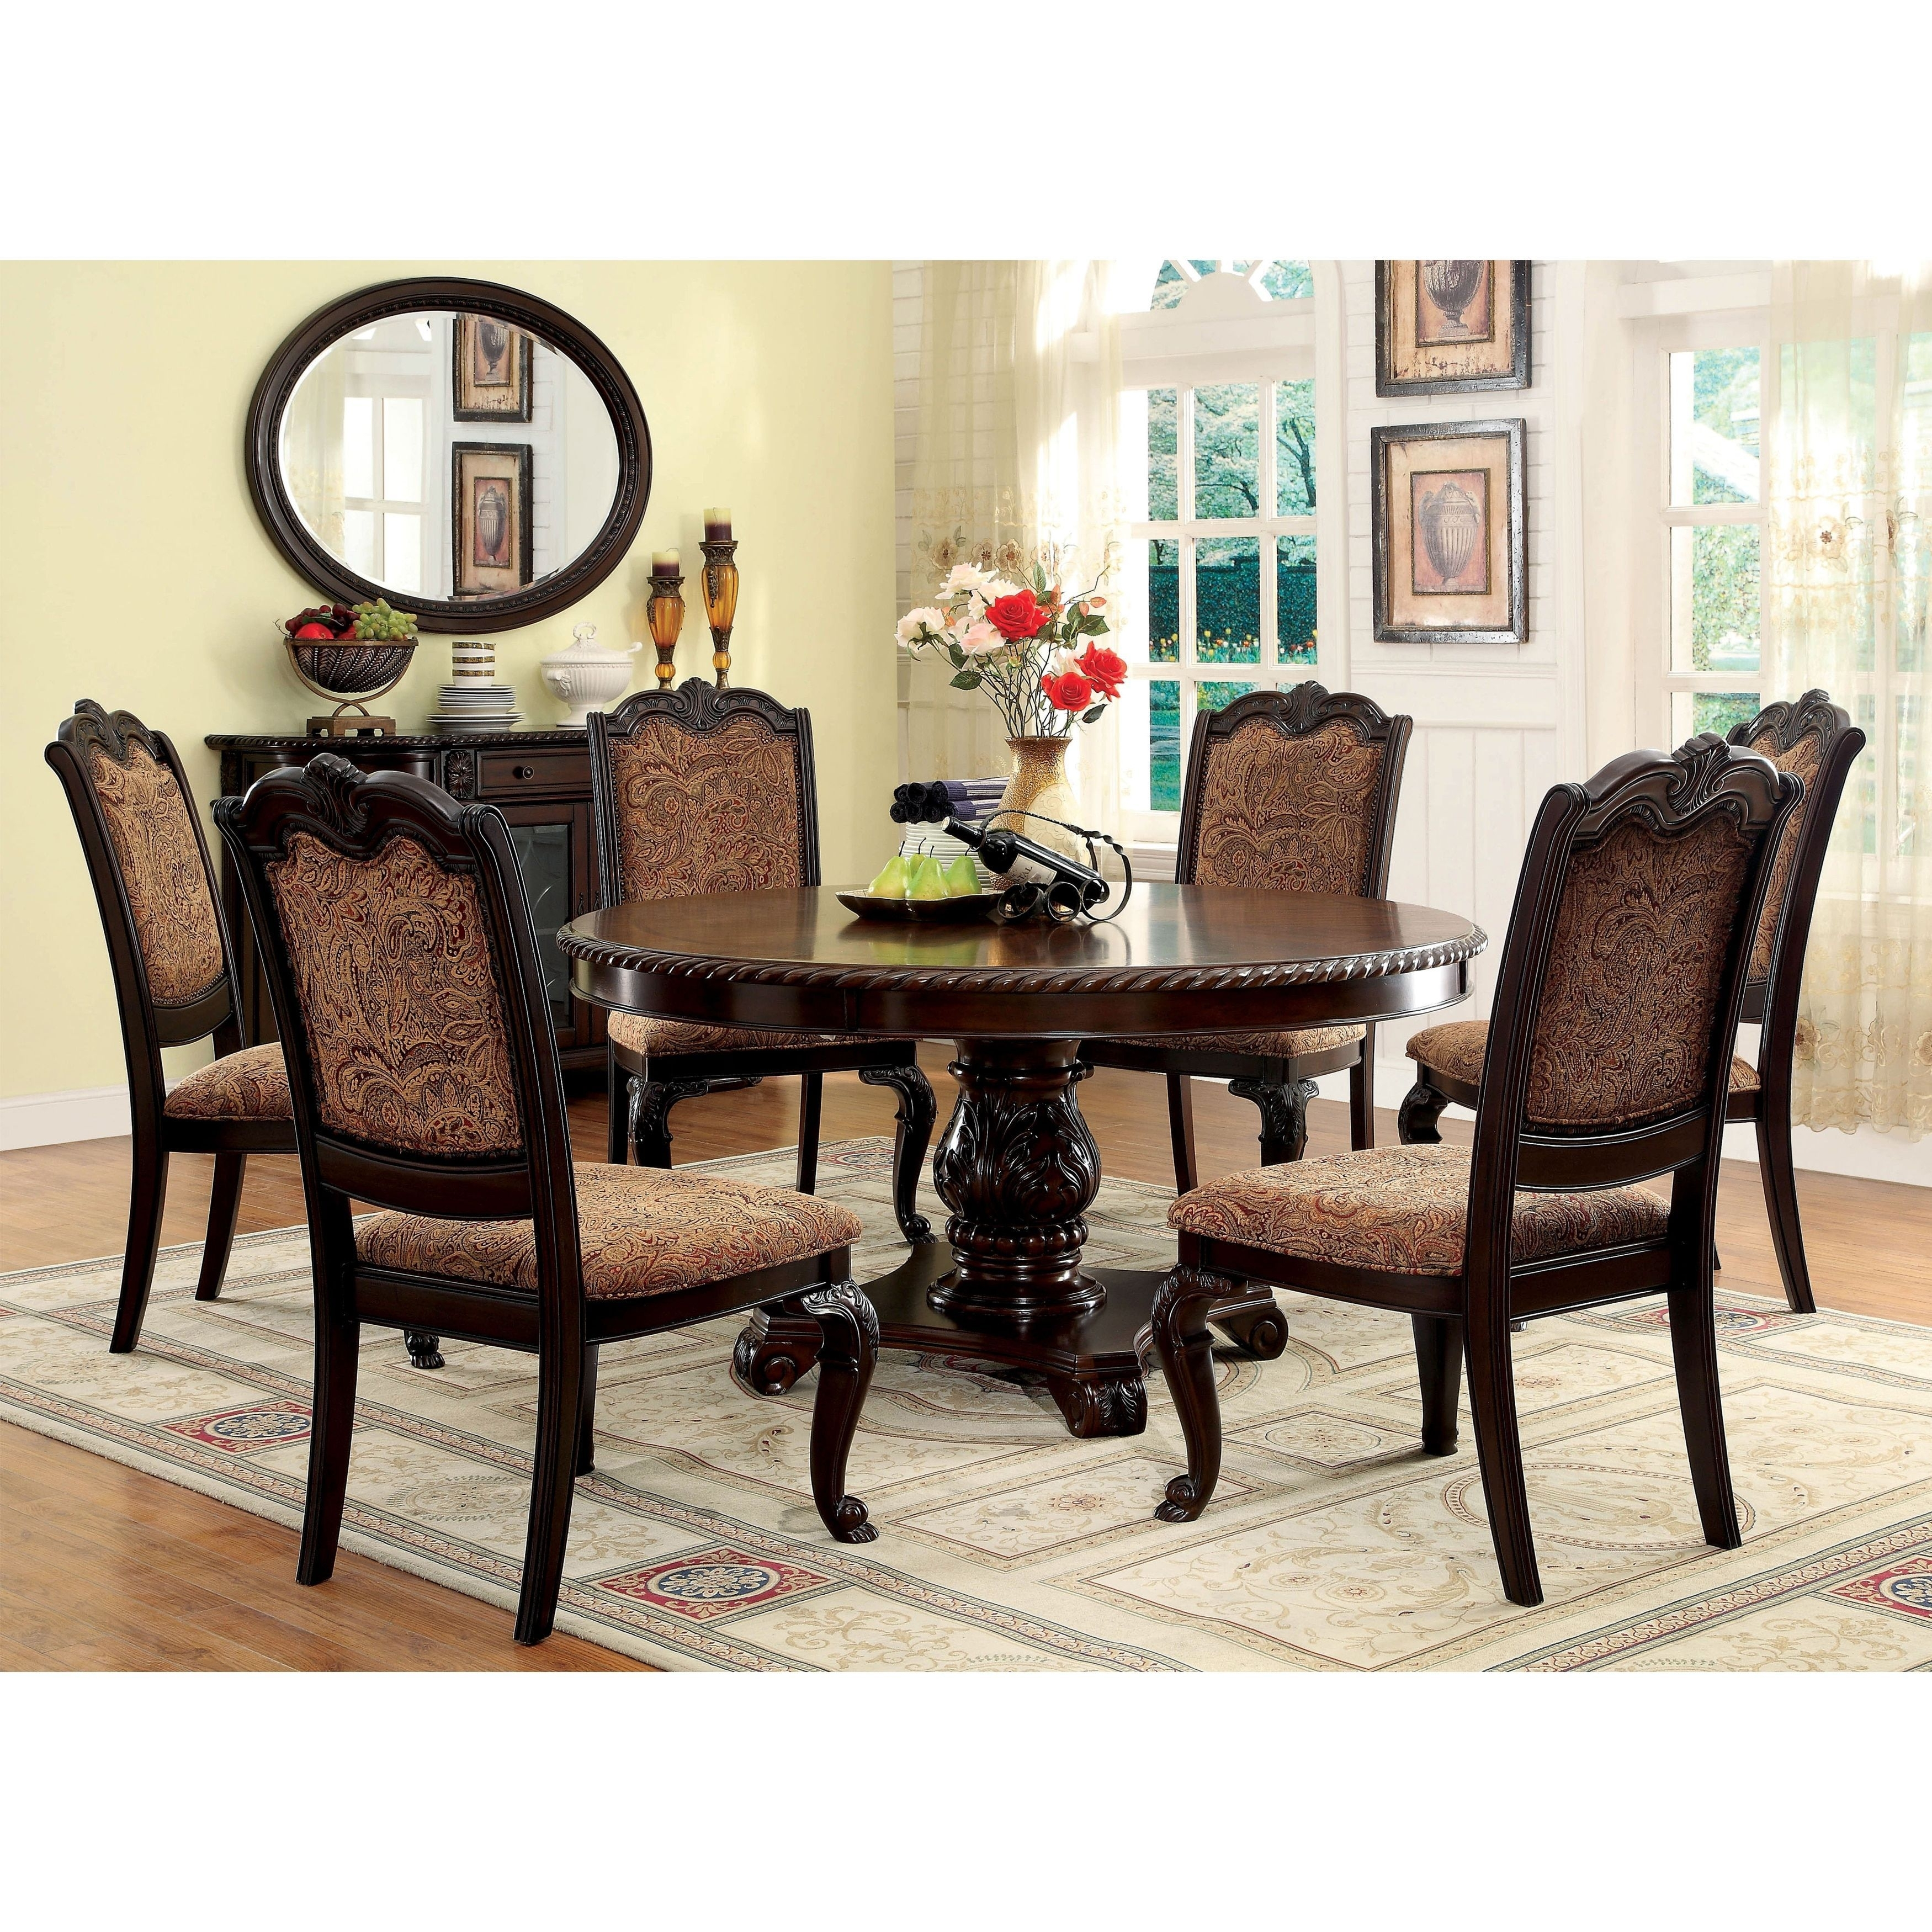 Furniture Of America Oskarre Iii Brown Cherry (Red) 7 Piece Formal Inside Newest Norwood 7 Piece Rectangle Extension Dining Sets (Image 3 of 20)